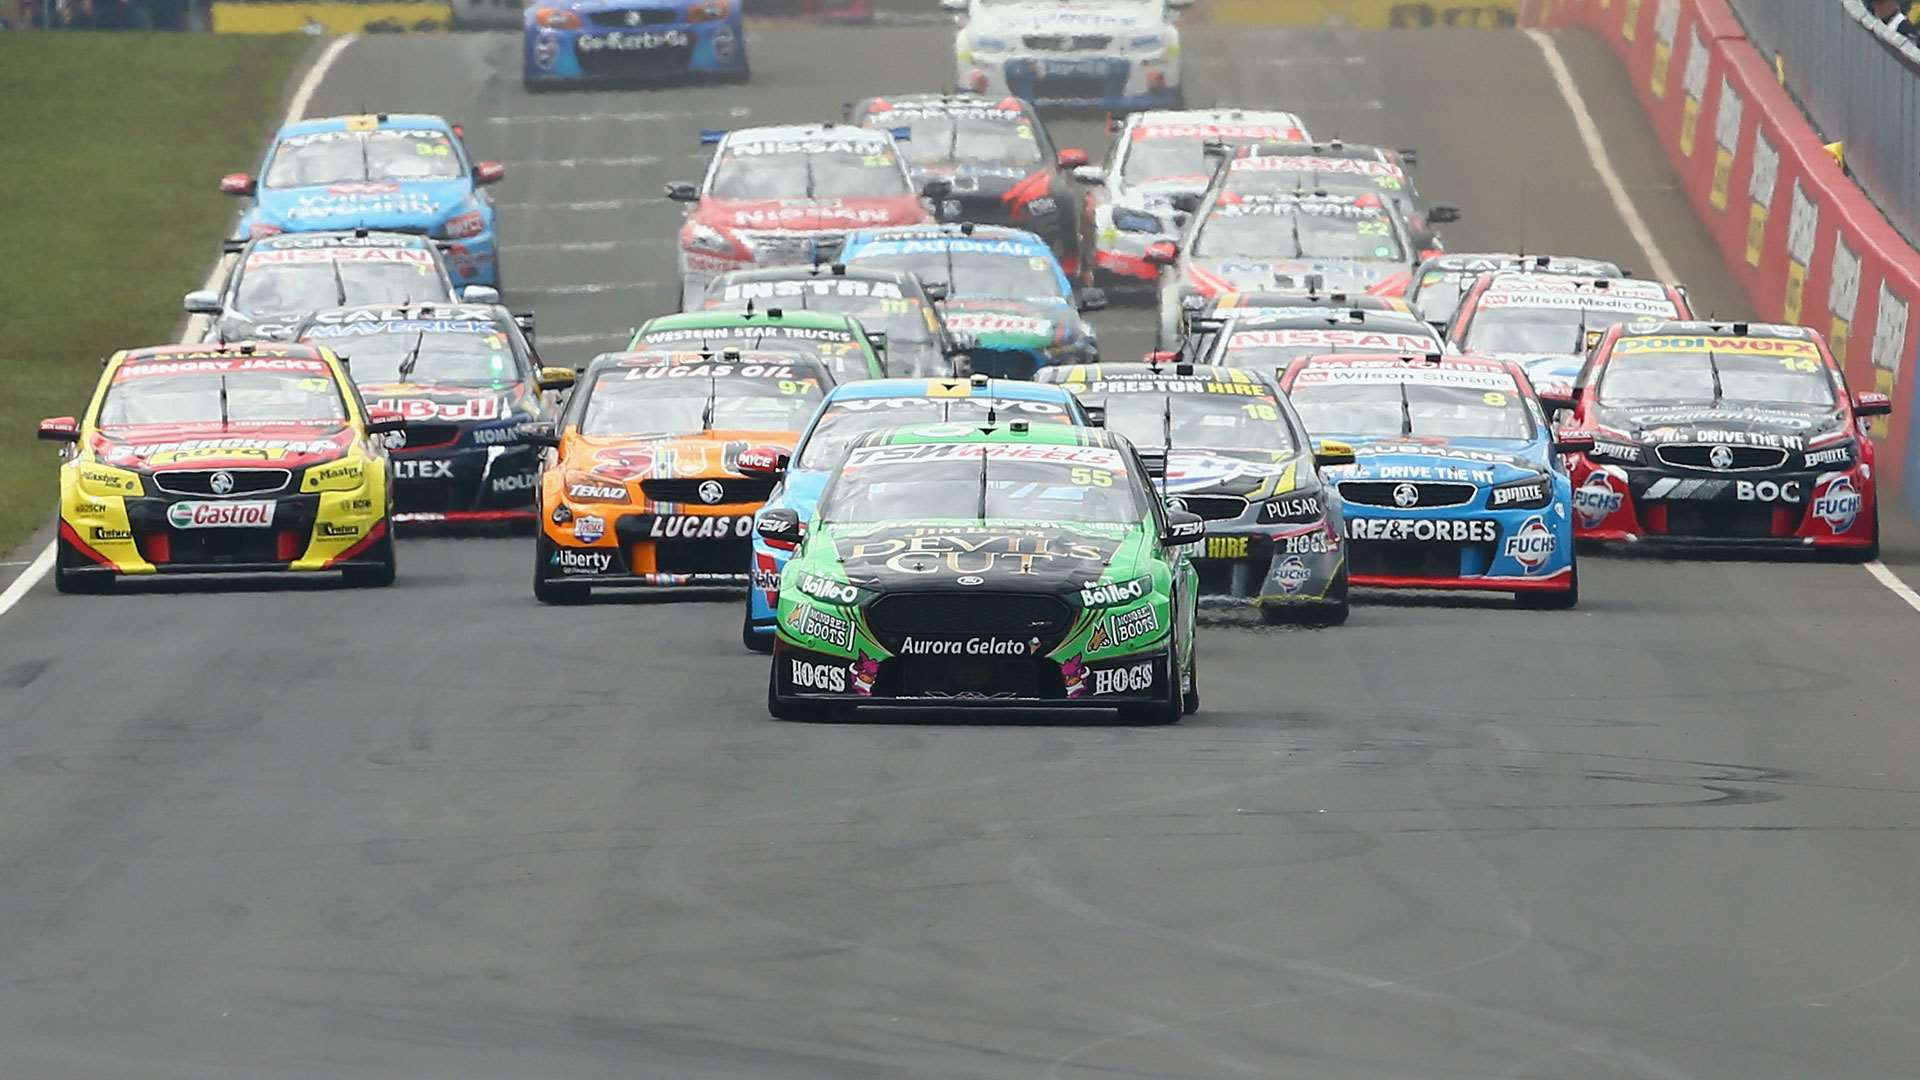 Fox Sports' Bathurst App puts you in driver's seat